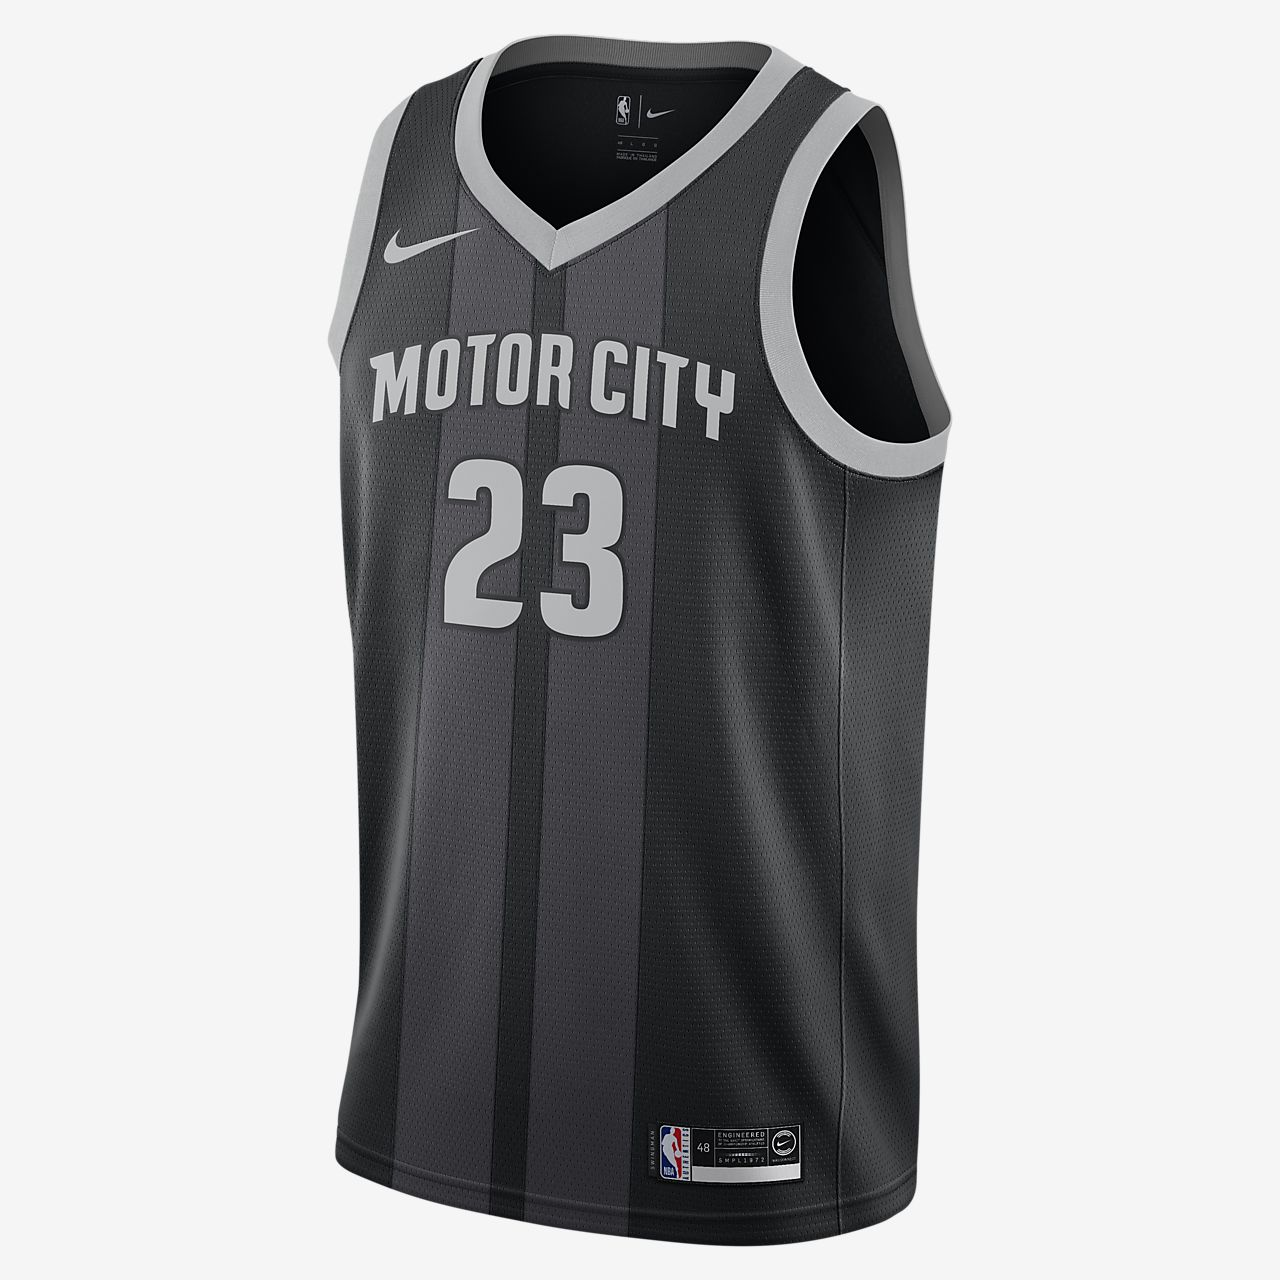 finest selection 319cb 8d92c Men s Nike NBA Connected Jersey. Blake Griffin City Edition Swingman  (Detroit Pistons)